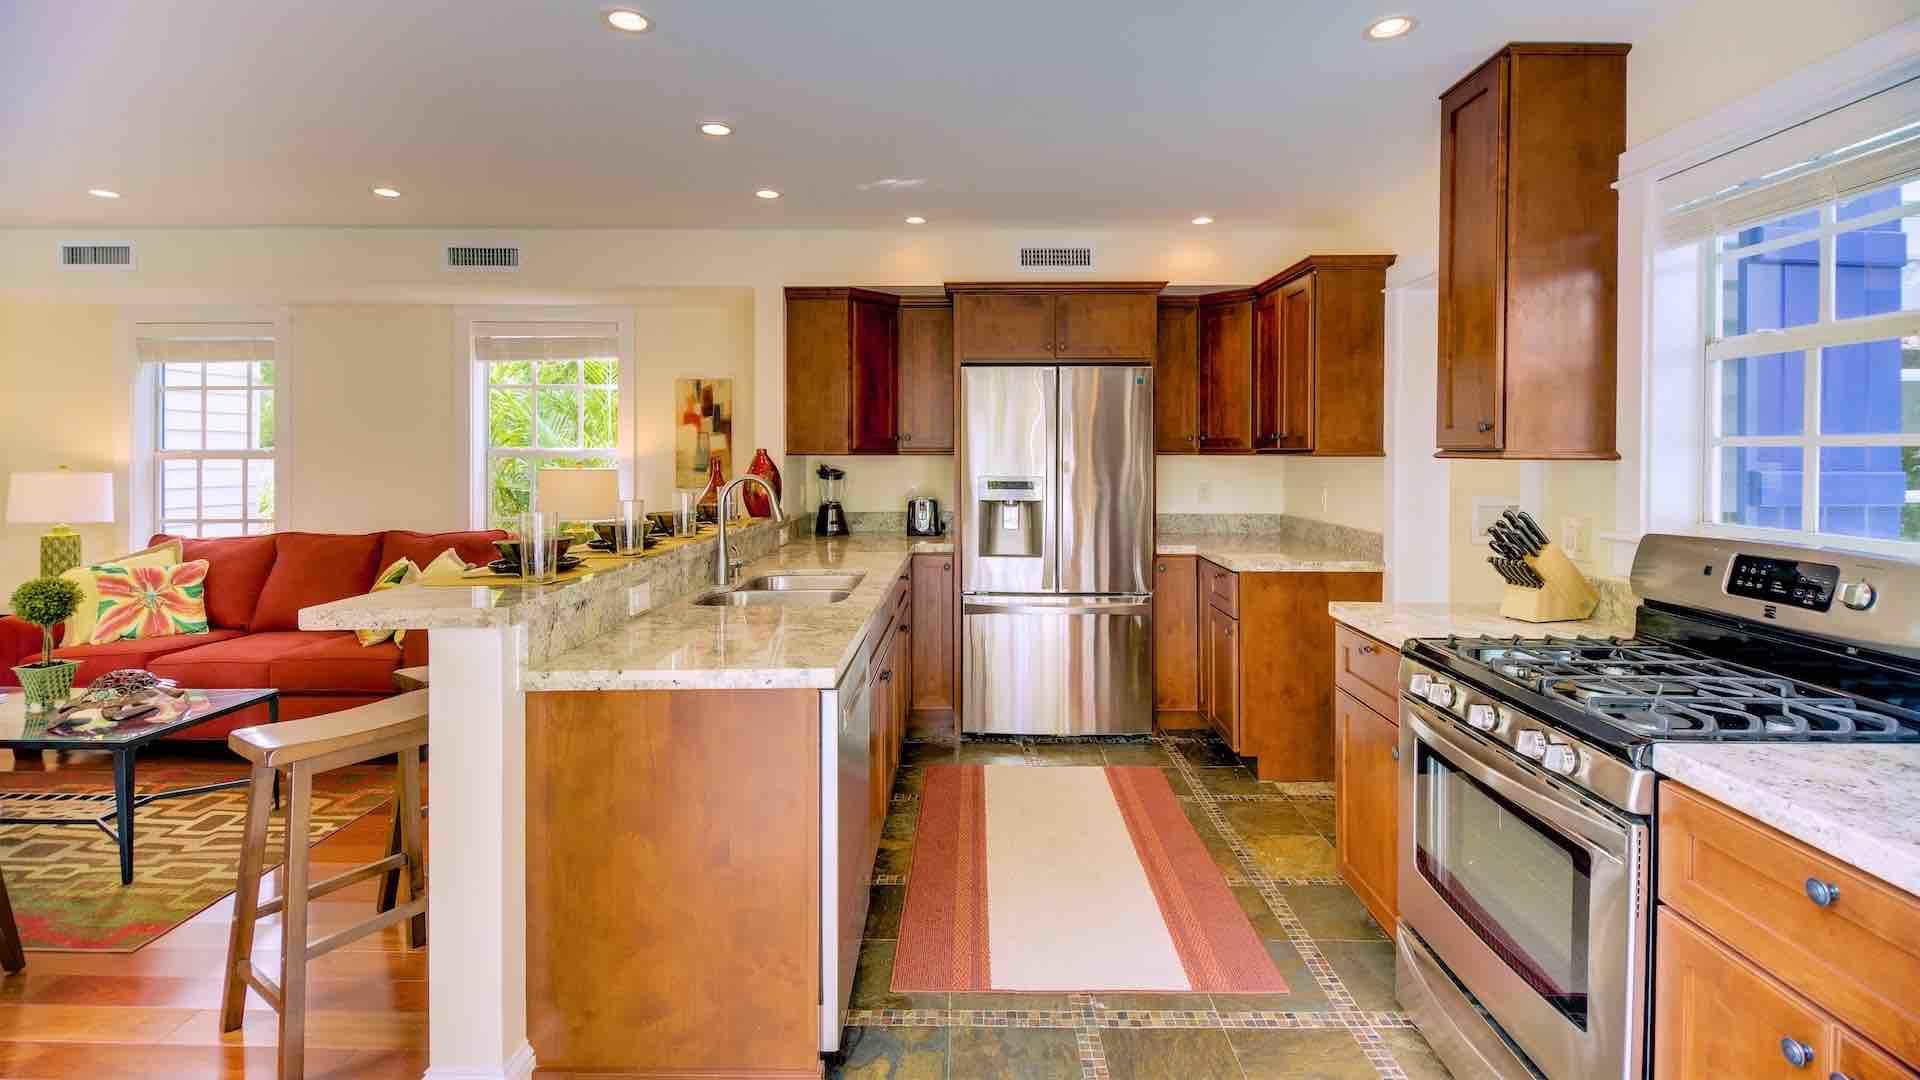 The kitchen has top of the line stainless steel appliances...